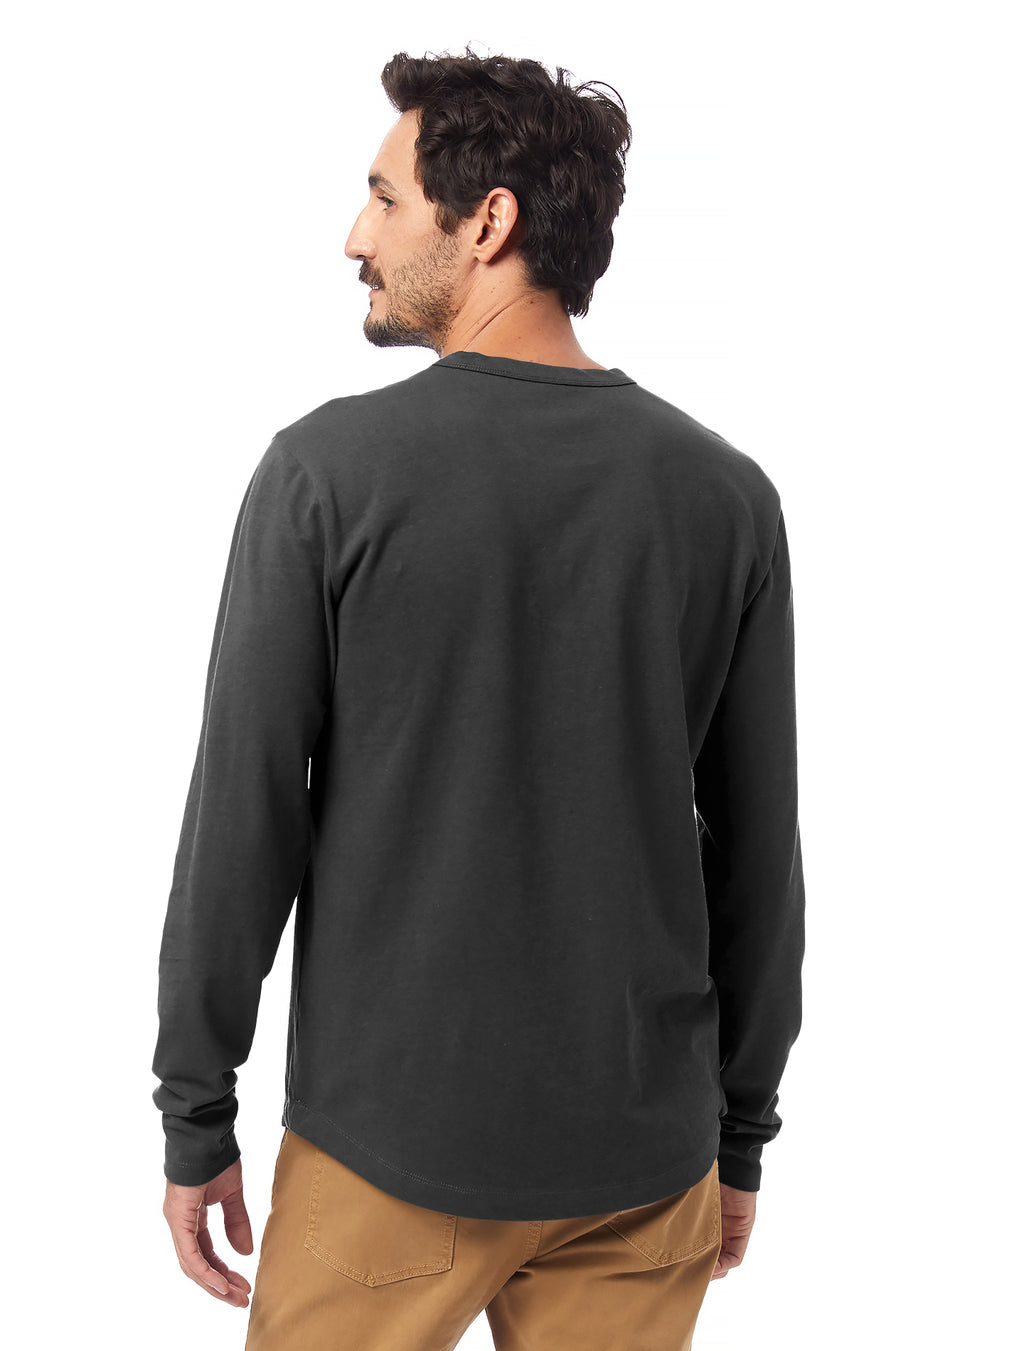 Alternative Apparel Hemp Blend Long Sleeve Tee- Shadow